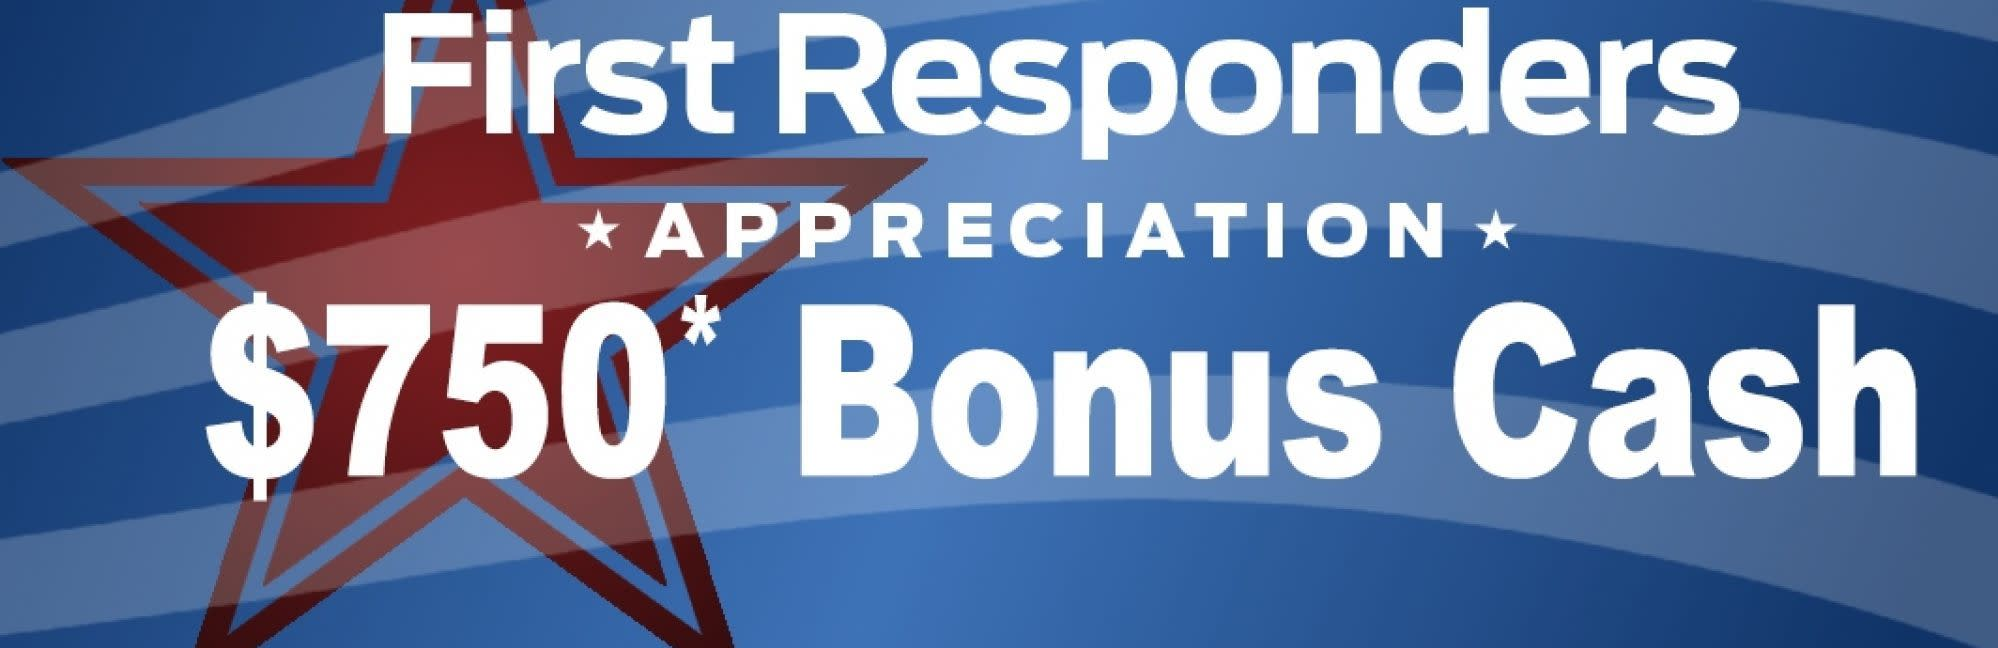 Ford First Responder >> Joe Cotton Ford First Responder Bonus Cash